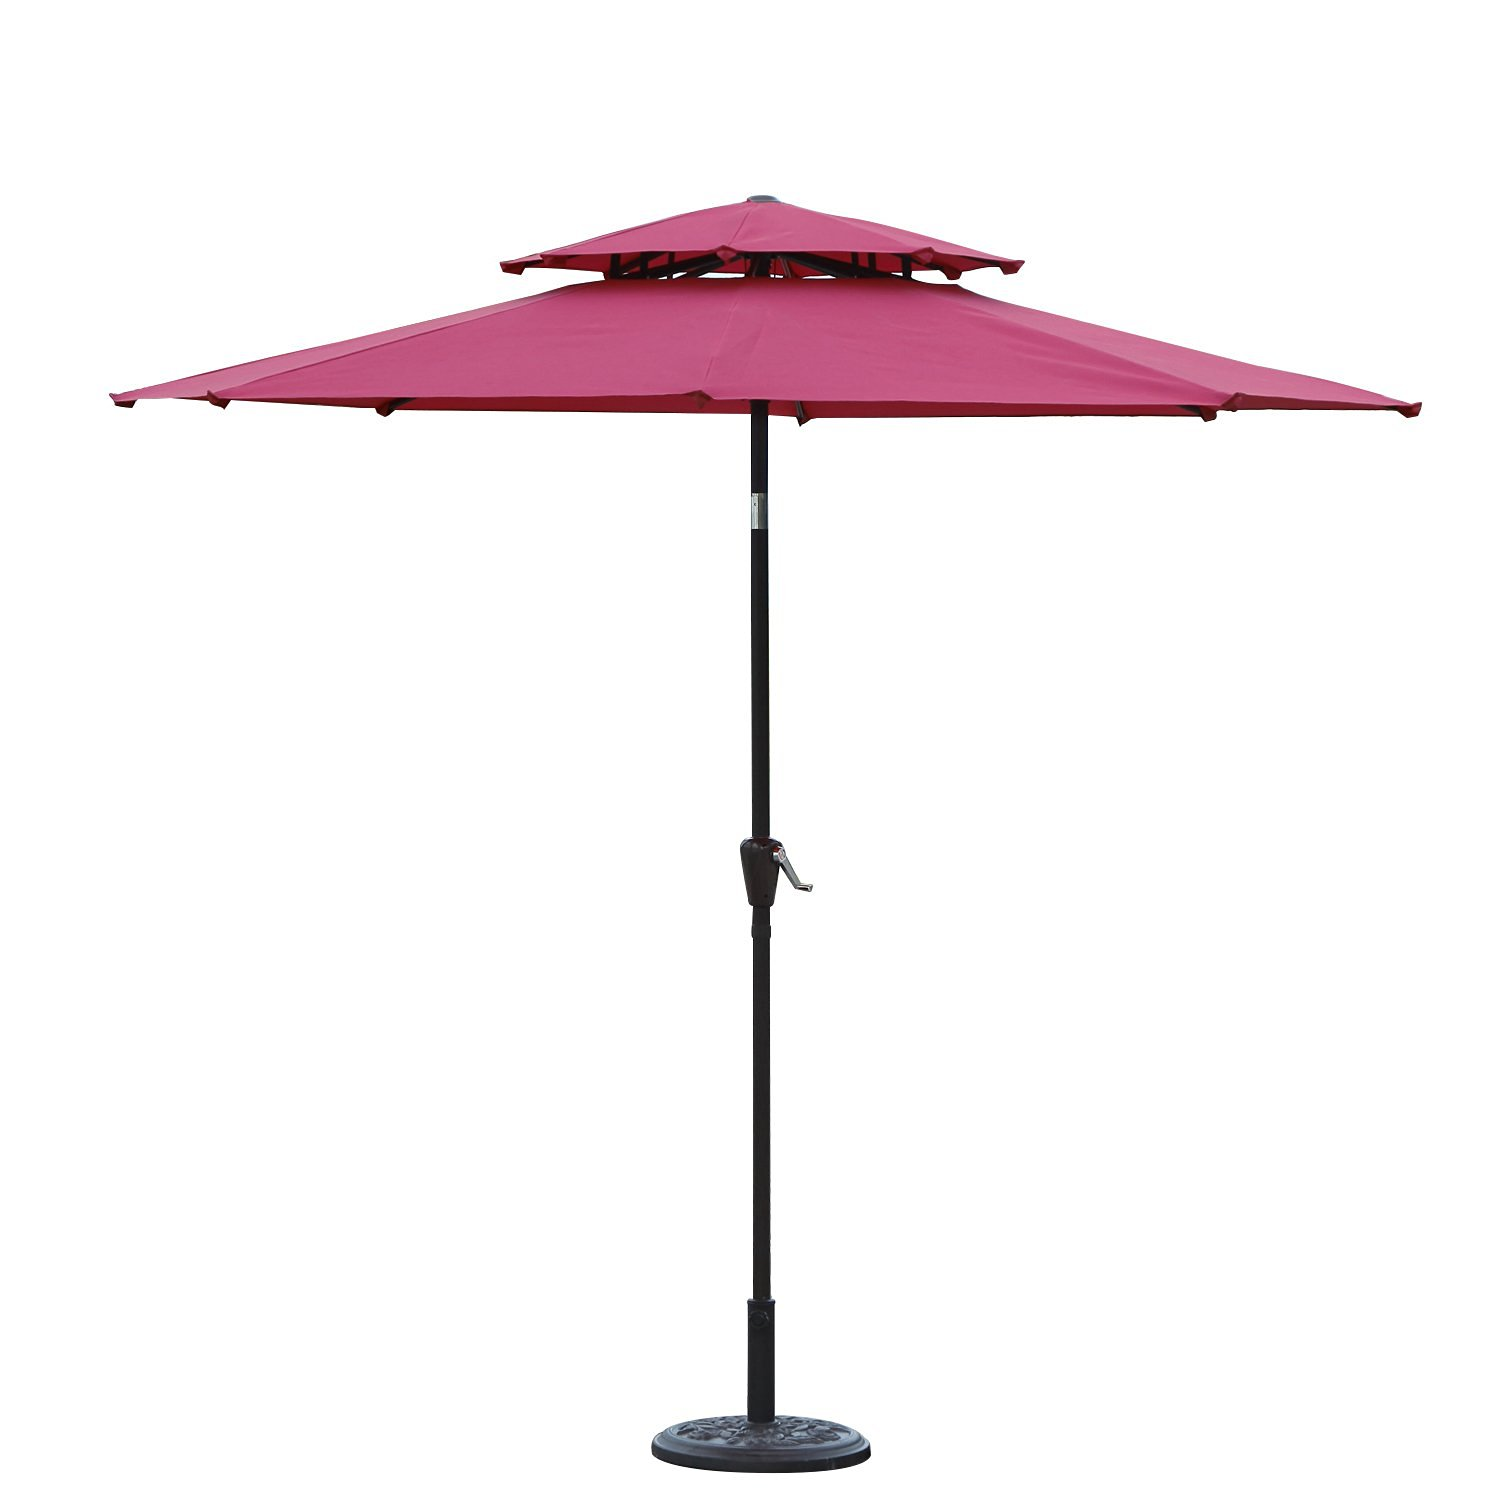 Joveco 9ft Patio Market Aluminum Umbrella, 8 Ribs, 2 Layers, Polyester (No Base Included) (Wine Red) by